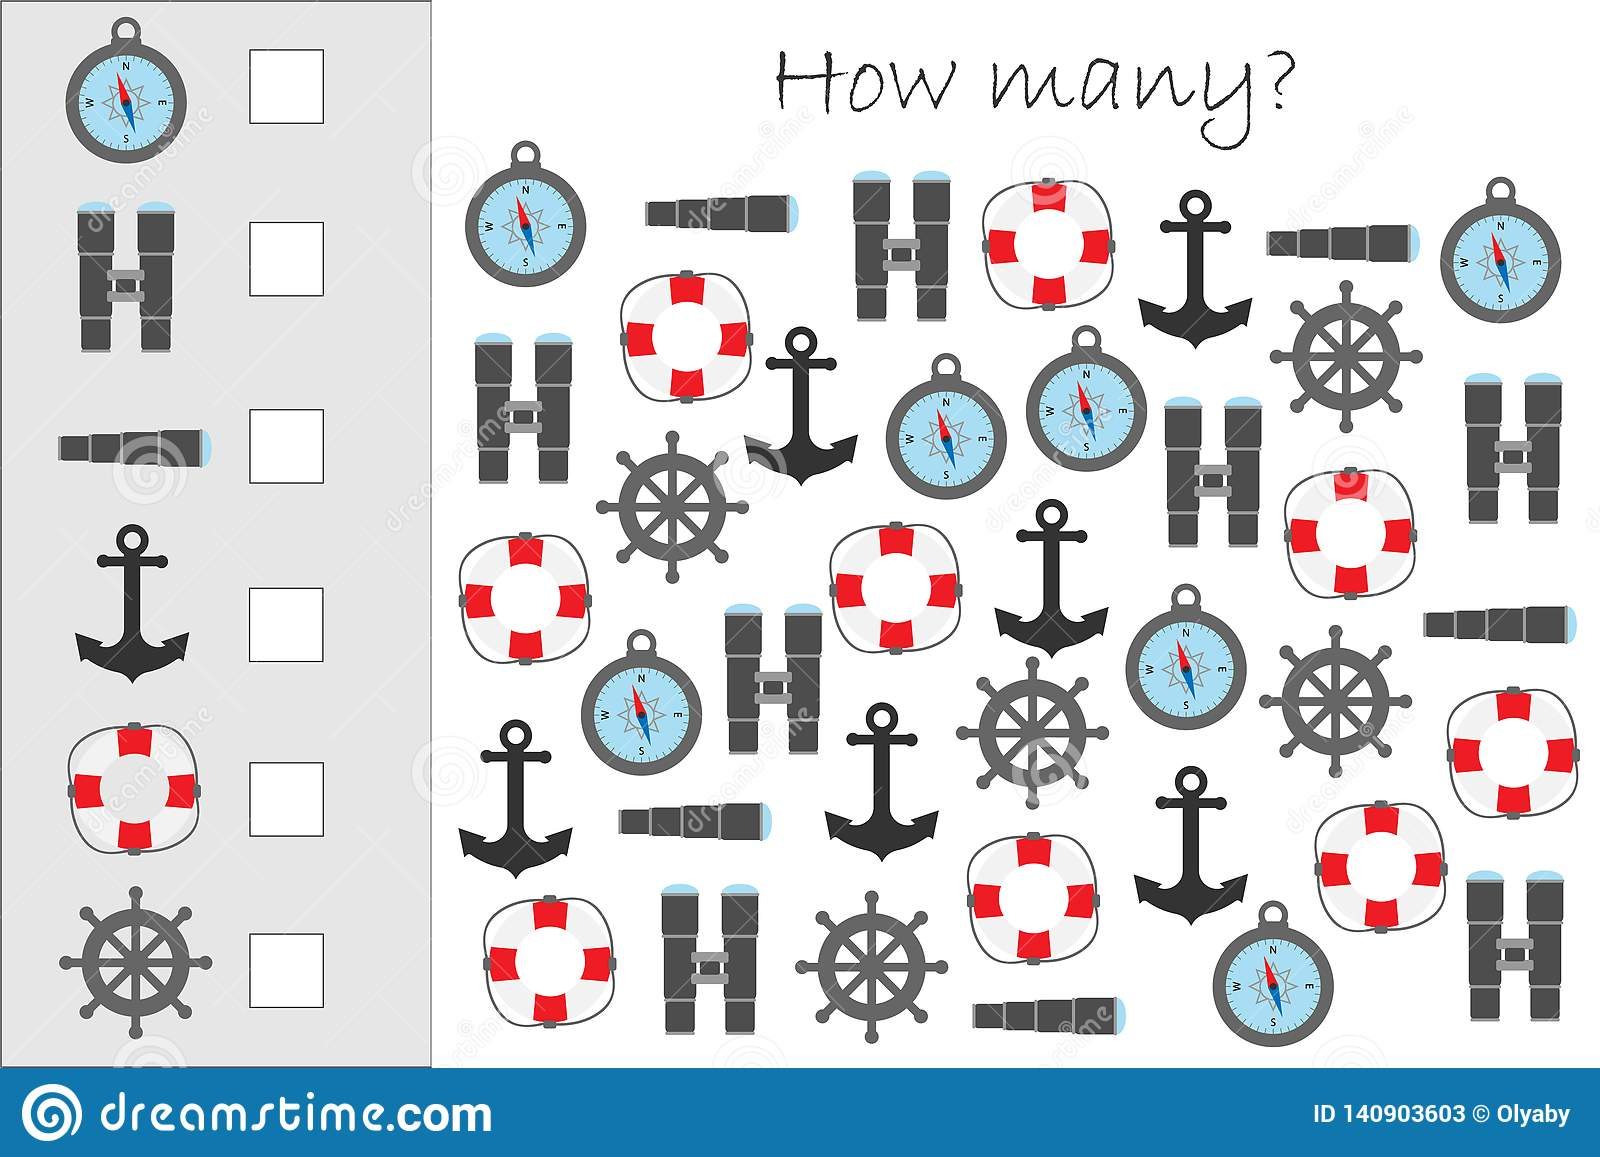 How Many Counting Game With Marine Pictures For Kids